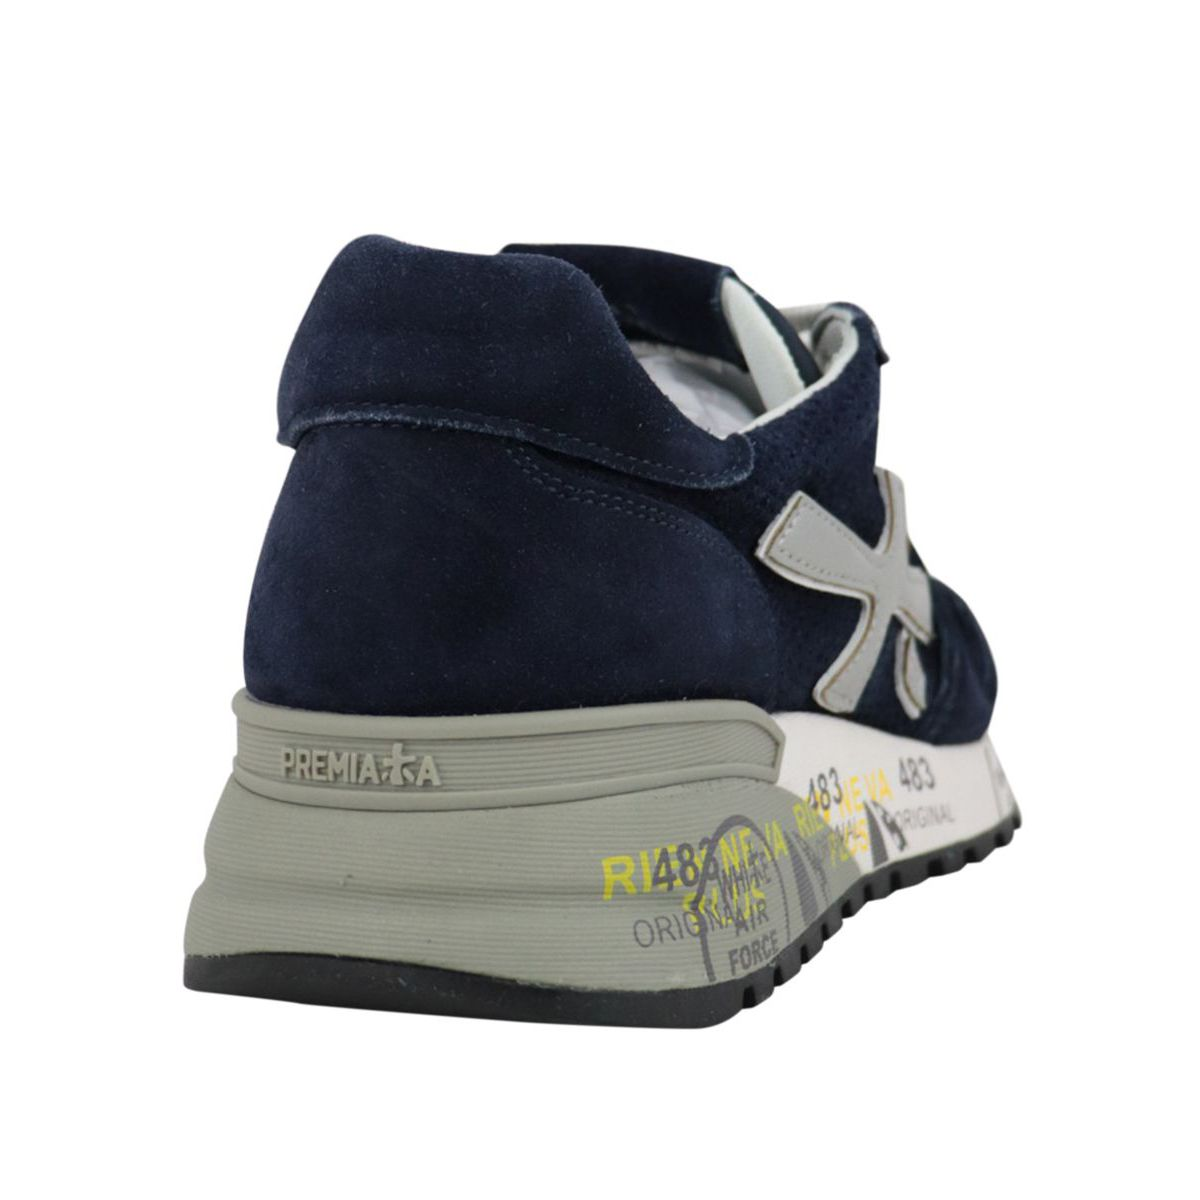 Mick sneakers in suede with prints Navy Premiata